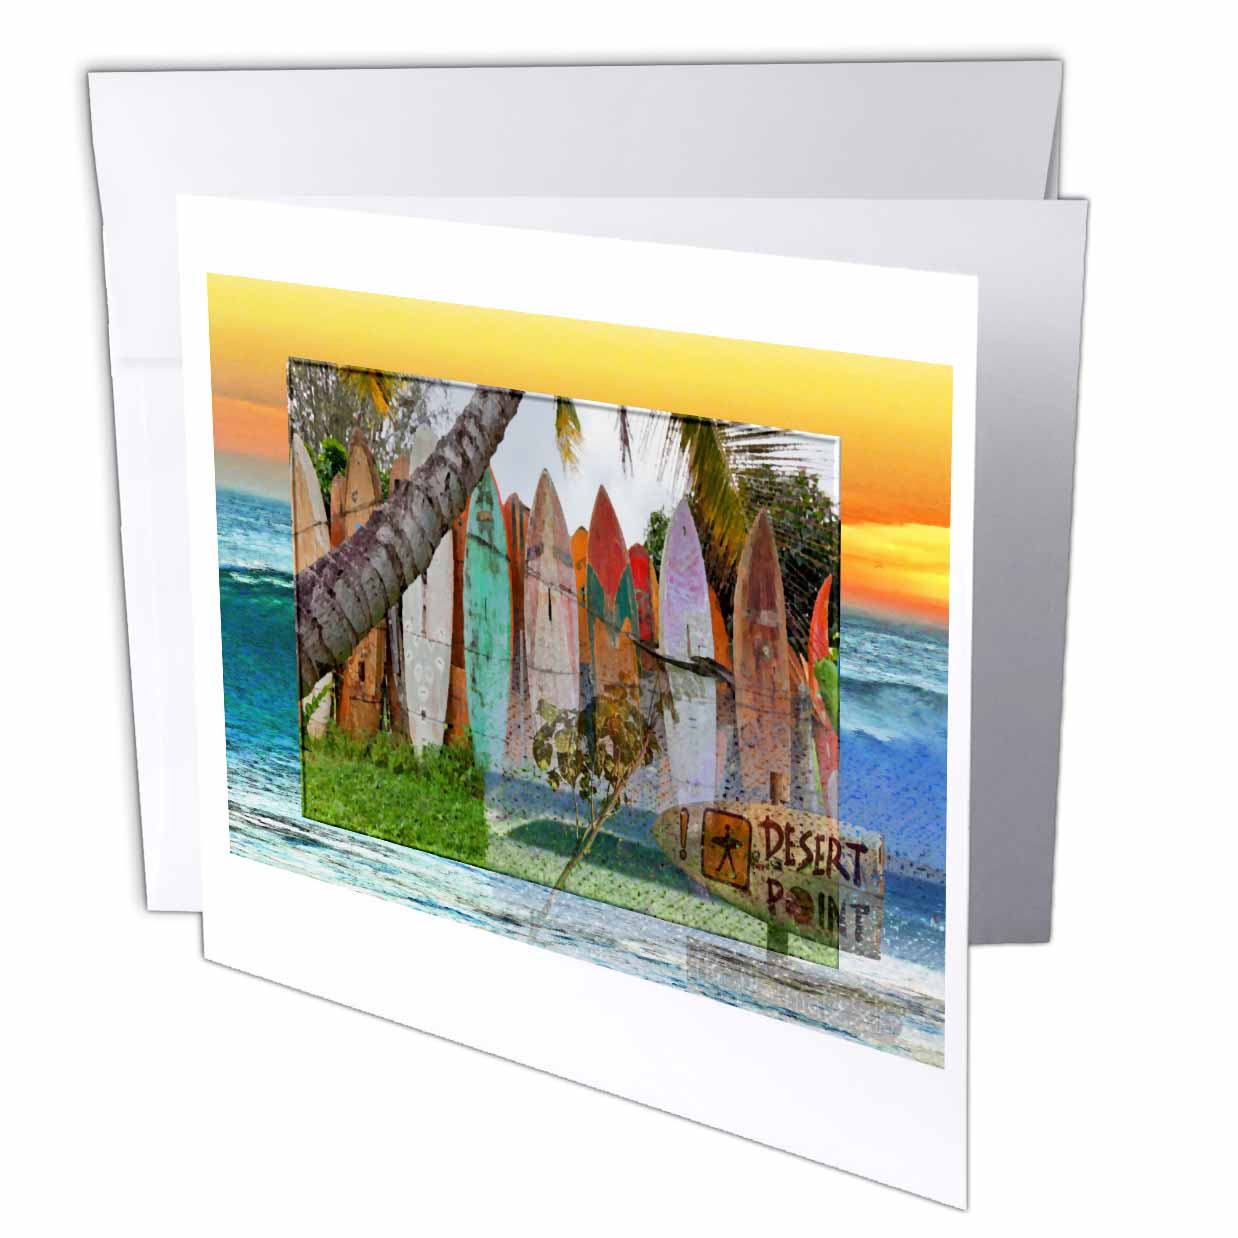 3dRose Desert Point Surfing Spot with Collage Surfboard background, Greeting Cards, 6 x 6 inches, set of 6